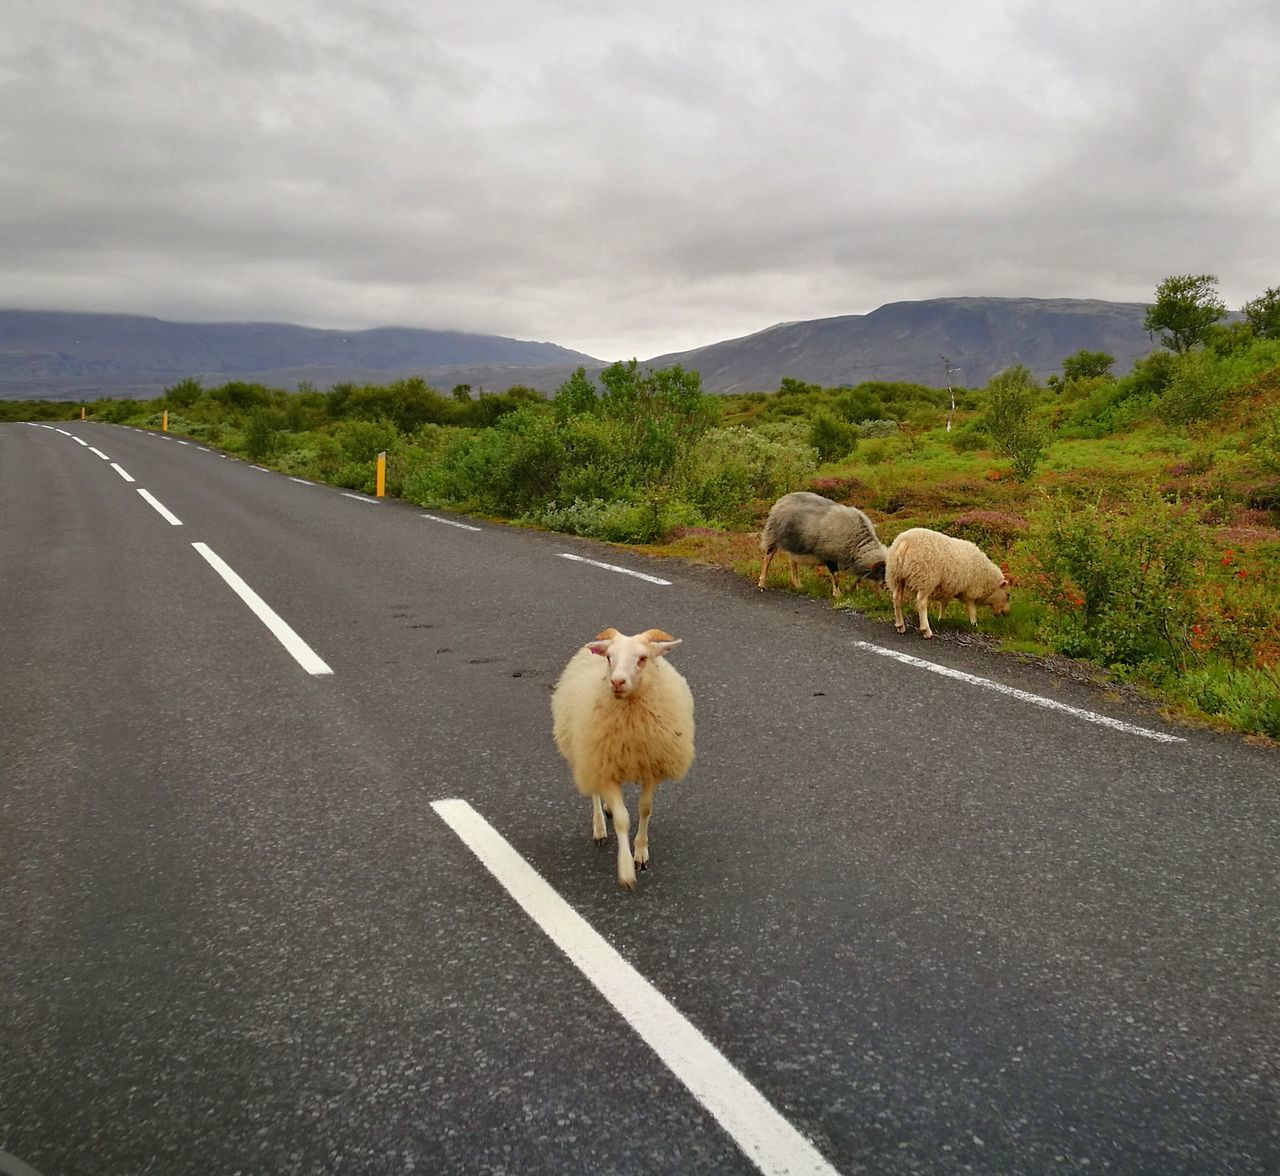 Icelandic lamb ~ Road Animal Themes Livestock Sheep Outdoors Animal Wildlife Nature Icelandic Nature Iceland Trip Travel Destinations Iceland Memories Power In Nature Cold Temperature Iceland_collection Iceland Beauty In Nature Landscape Lamb Icelandic Lamb Animal